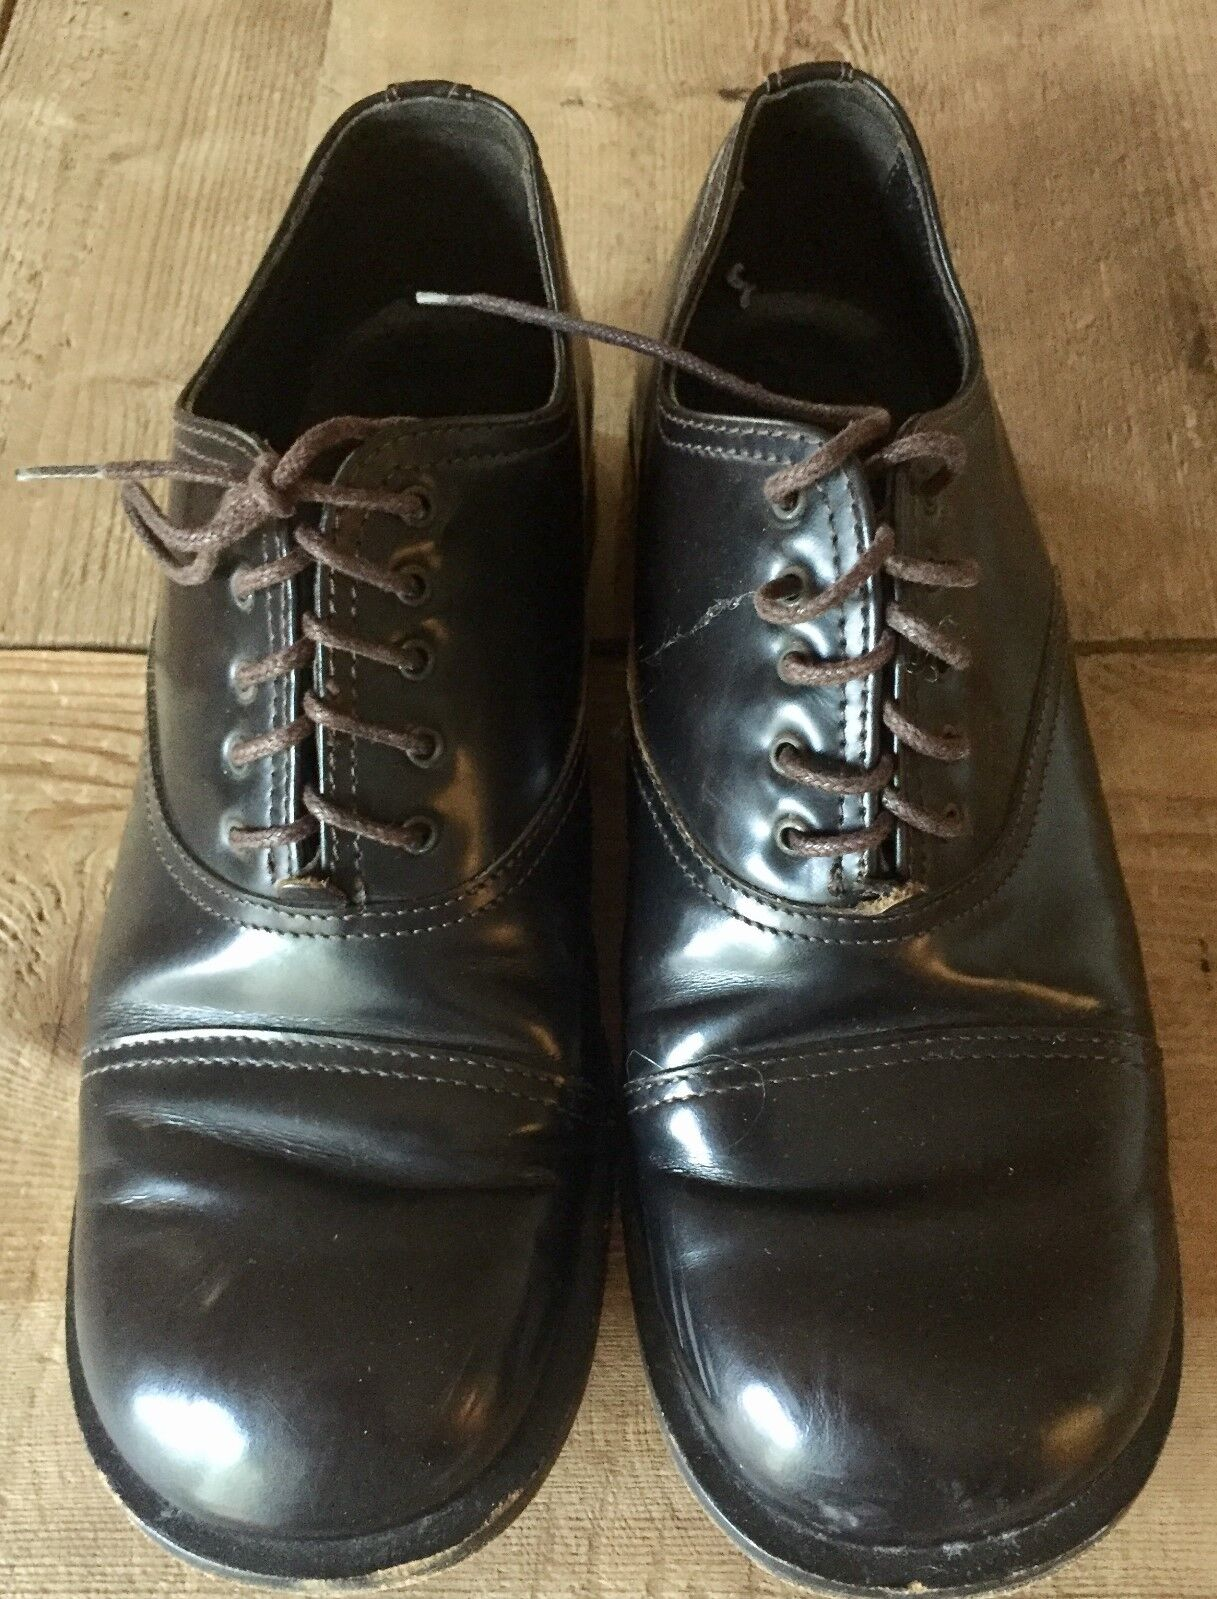 Barney New York Shoes Brown Oxford  Boys Dress Shoes York Made in Italy Euro Size 37 US 5 011912